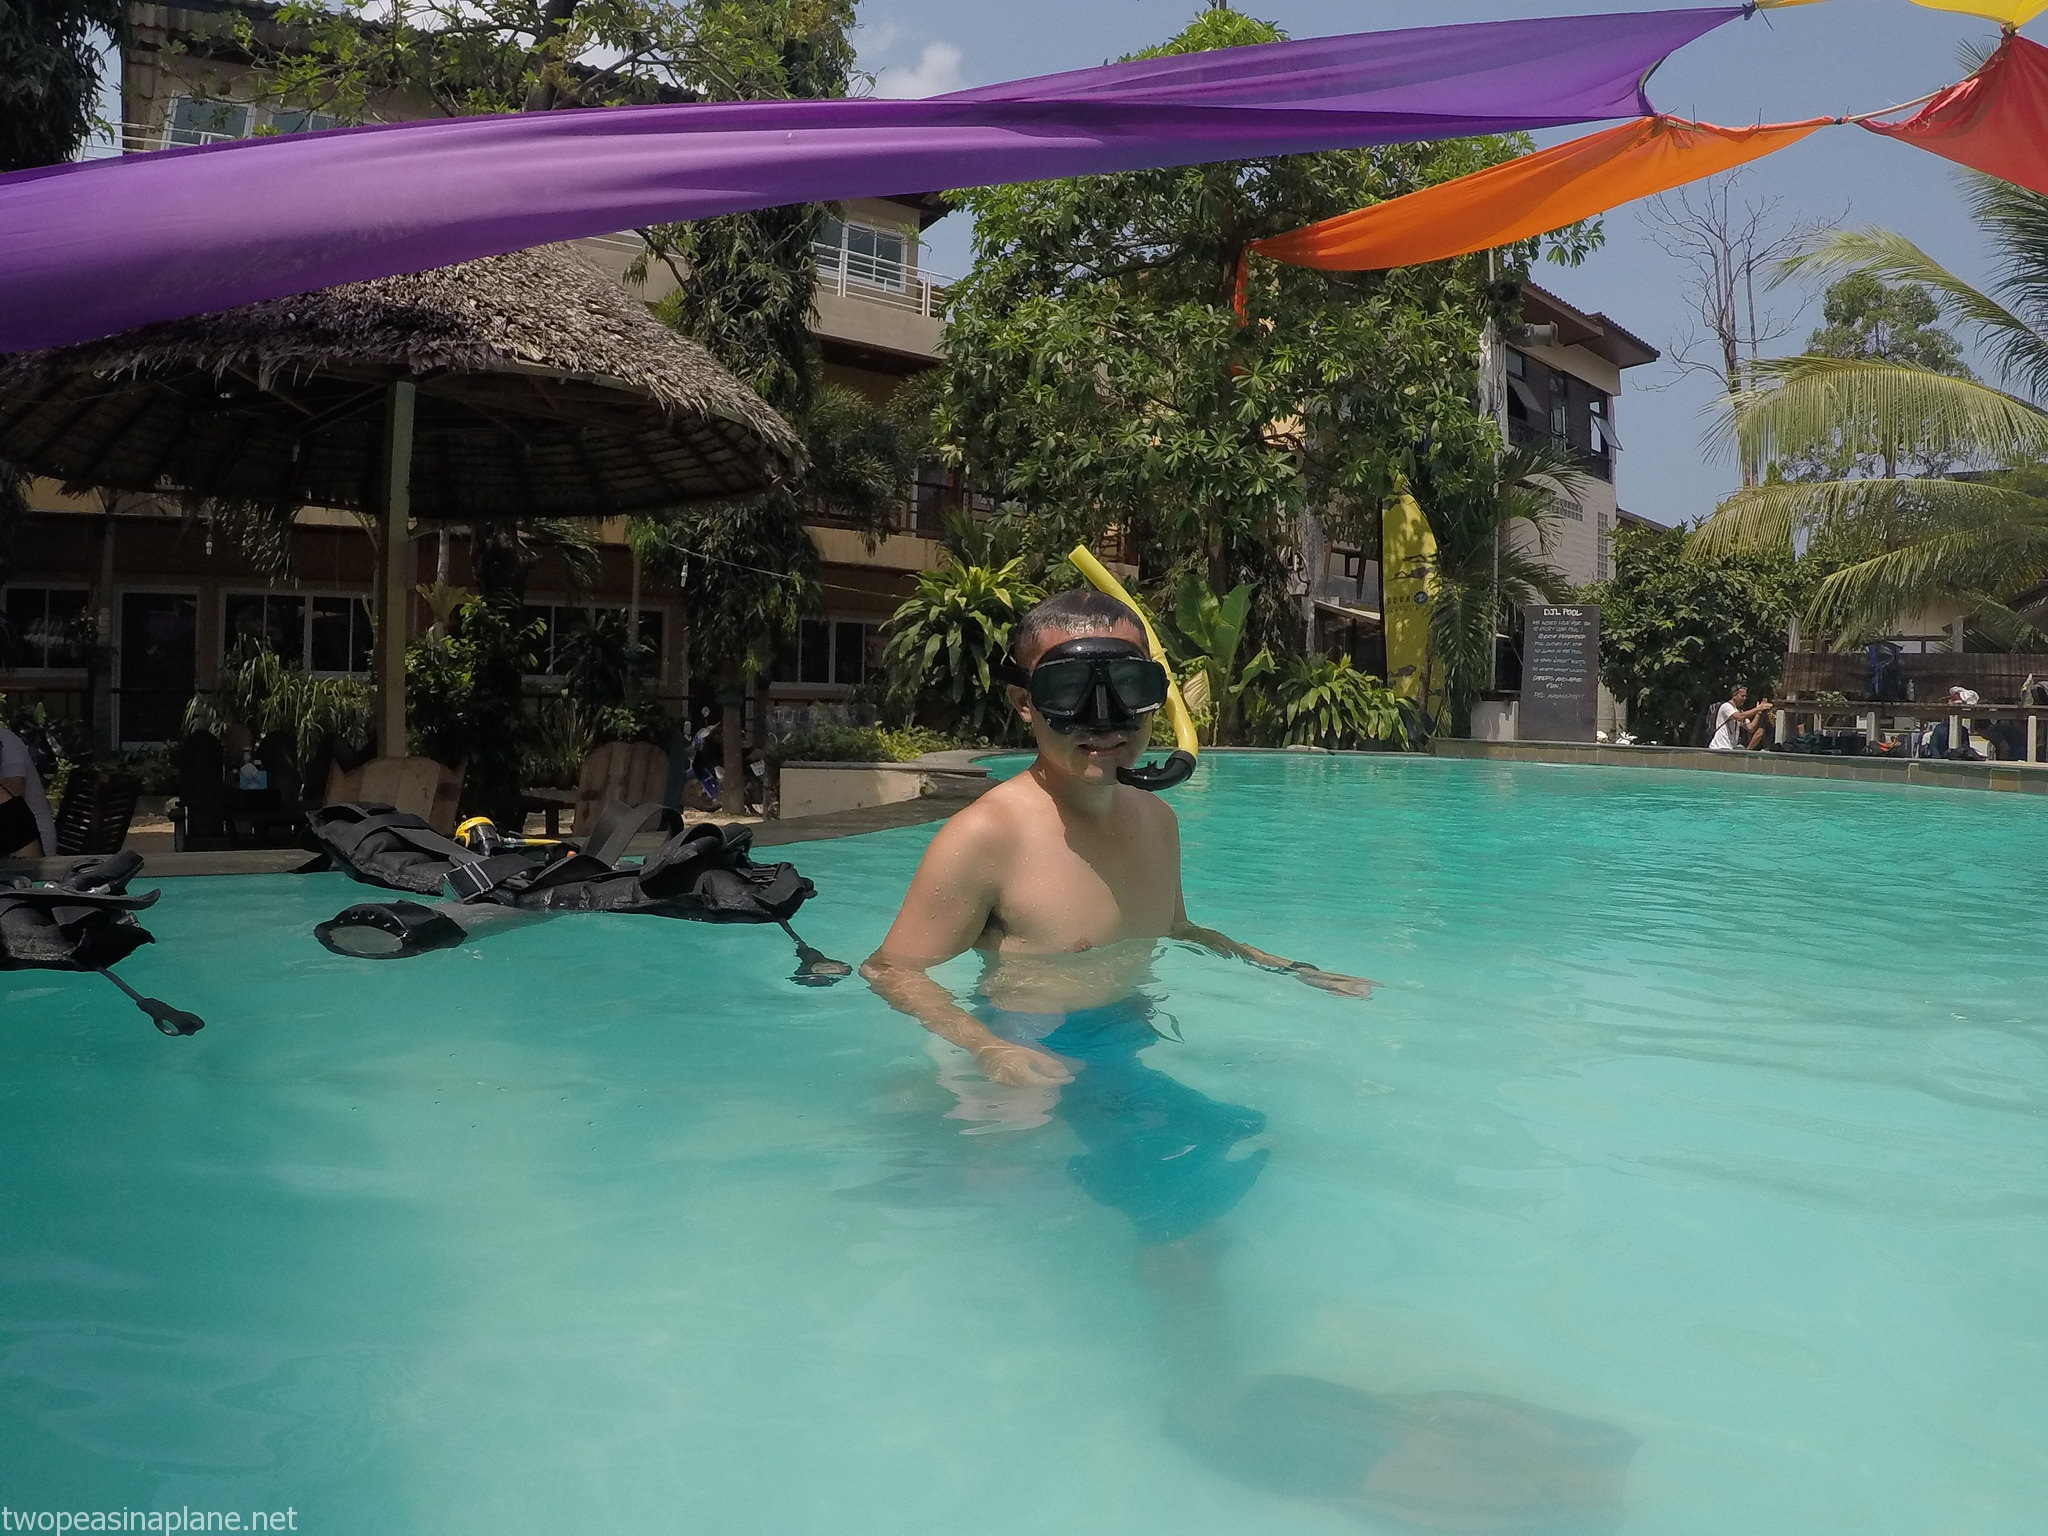 Learning to scuba dive in koh tao thailand two peas in a plane - Dive in koh tao ...